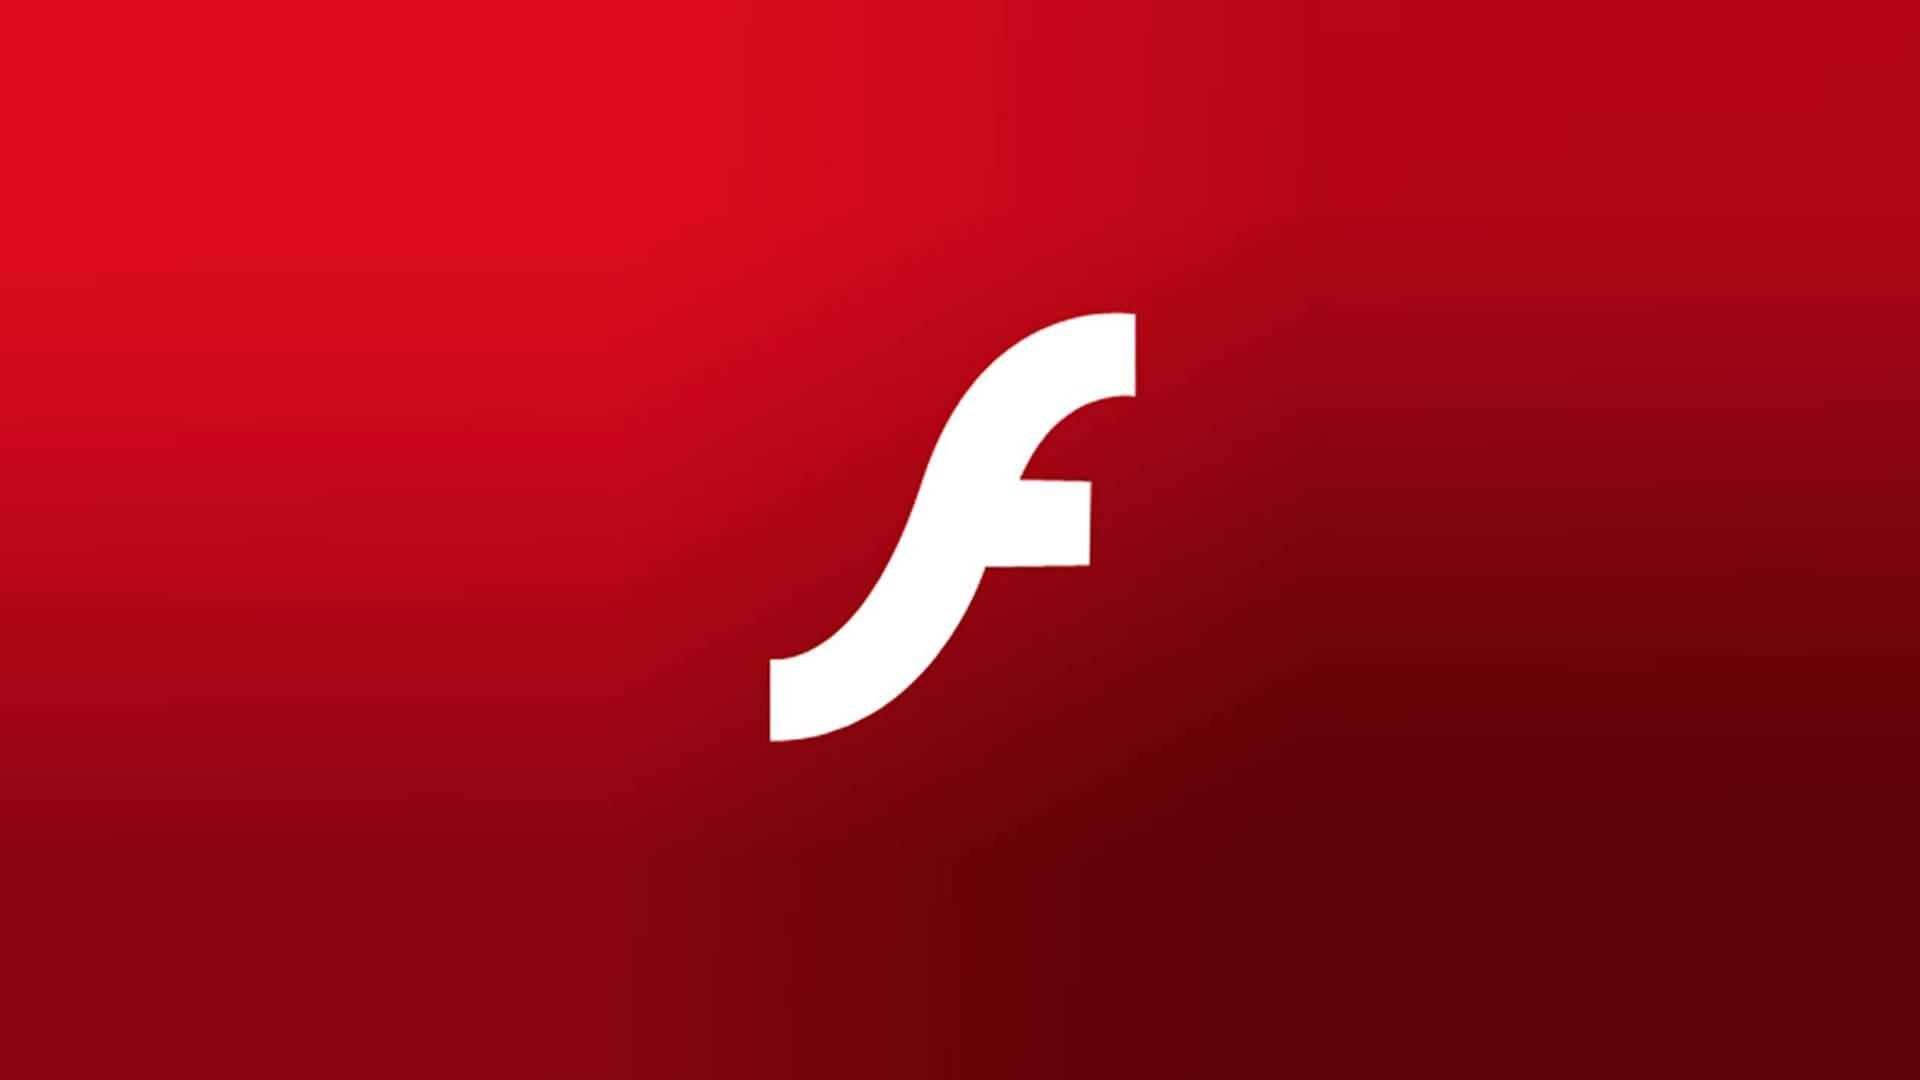 Windows 10 getting security updates for Adobe Flash Player